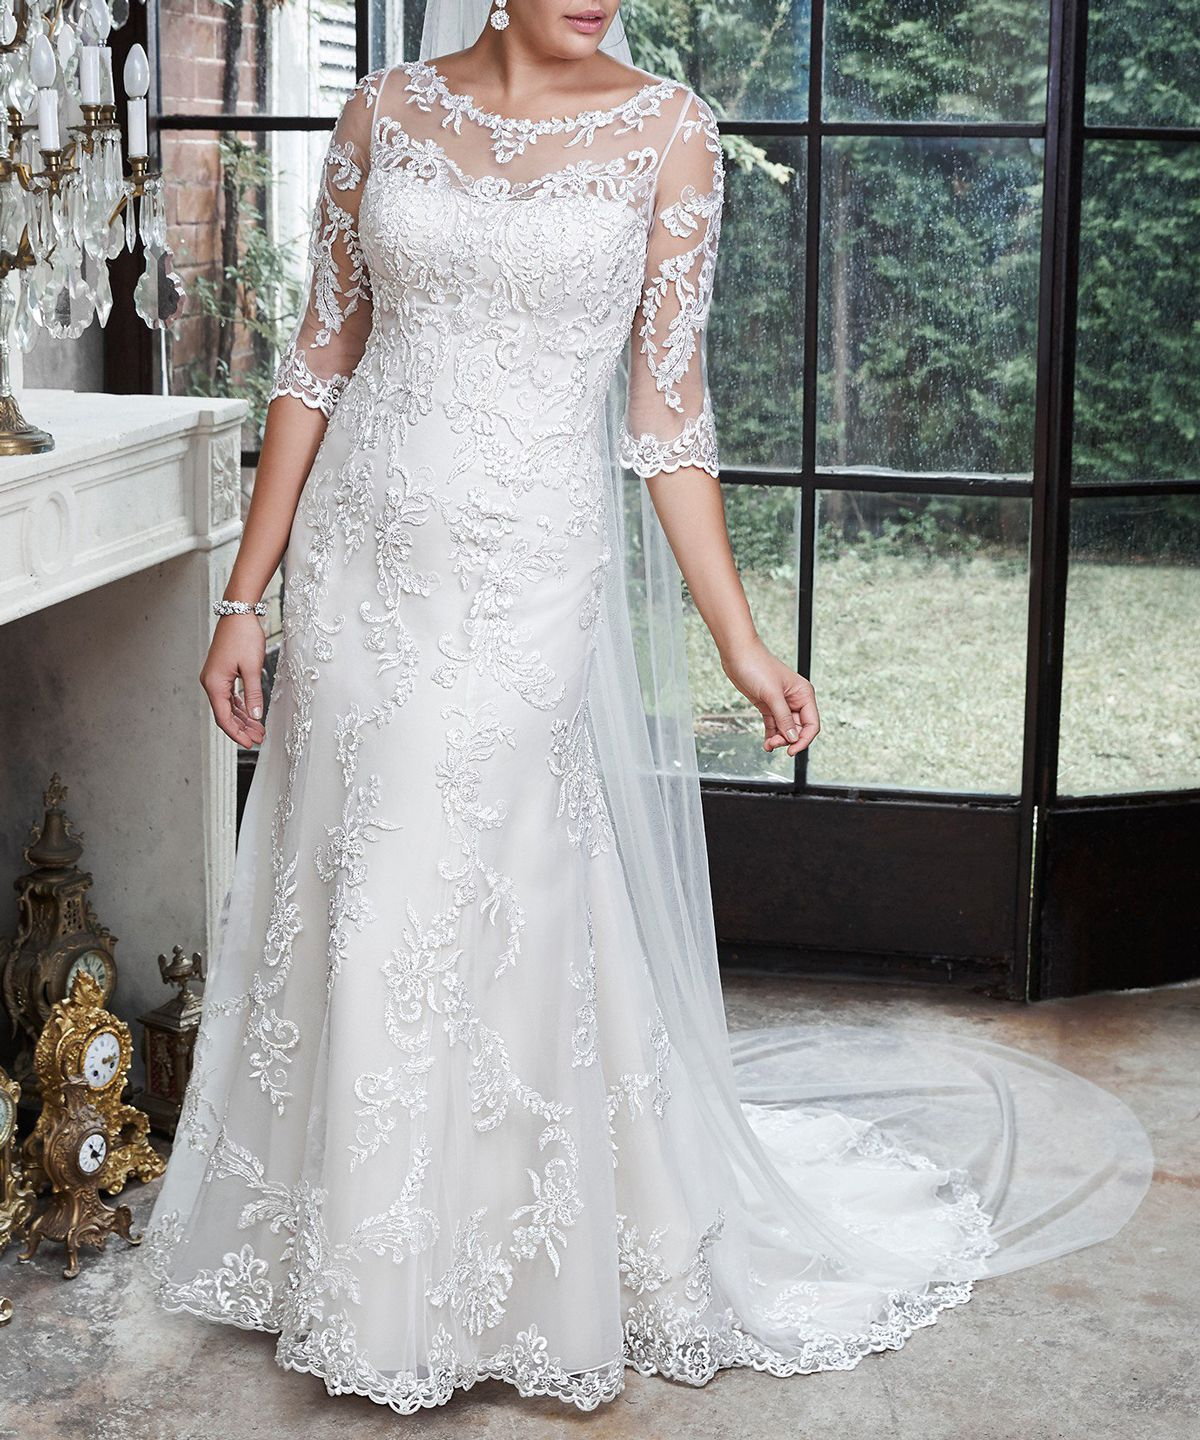 Wedding Gowns For Petite Figures: 11 Beautiful Wedding Gowns For Curvy Figures